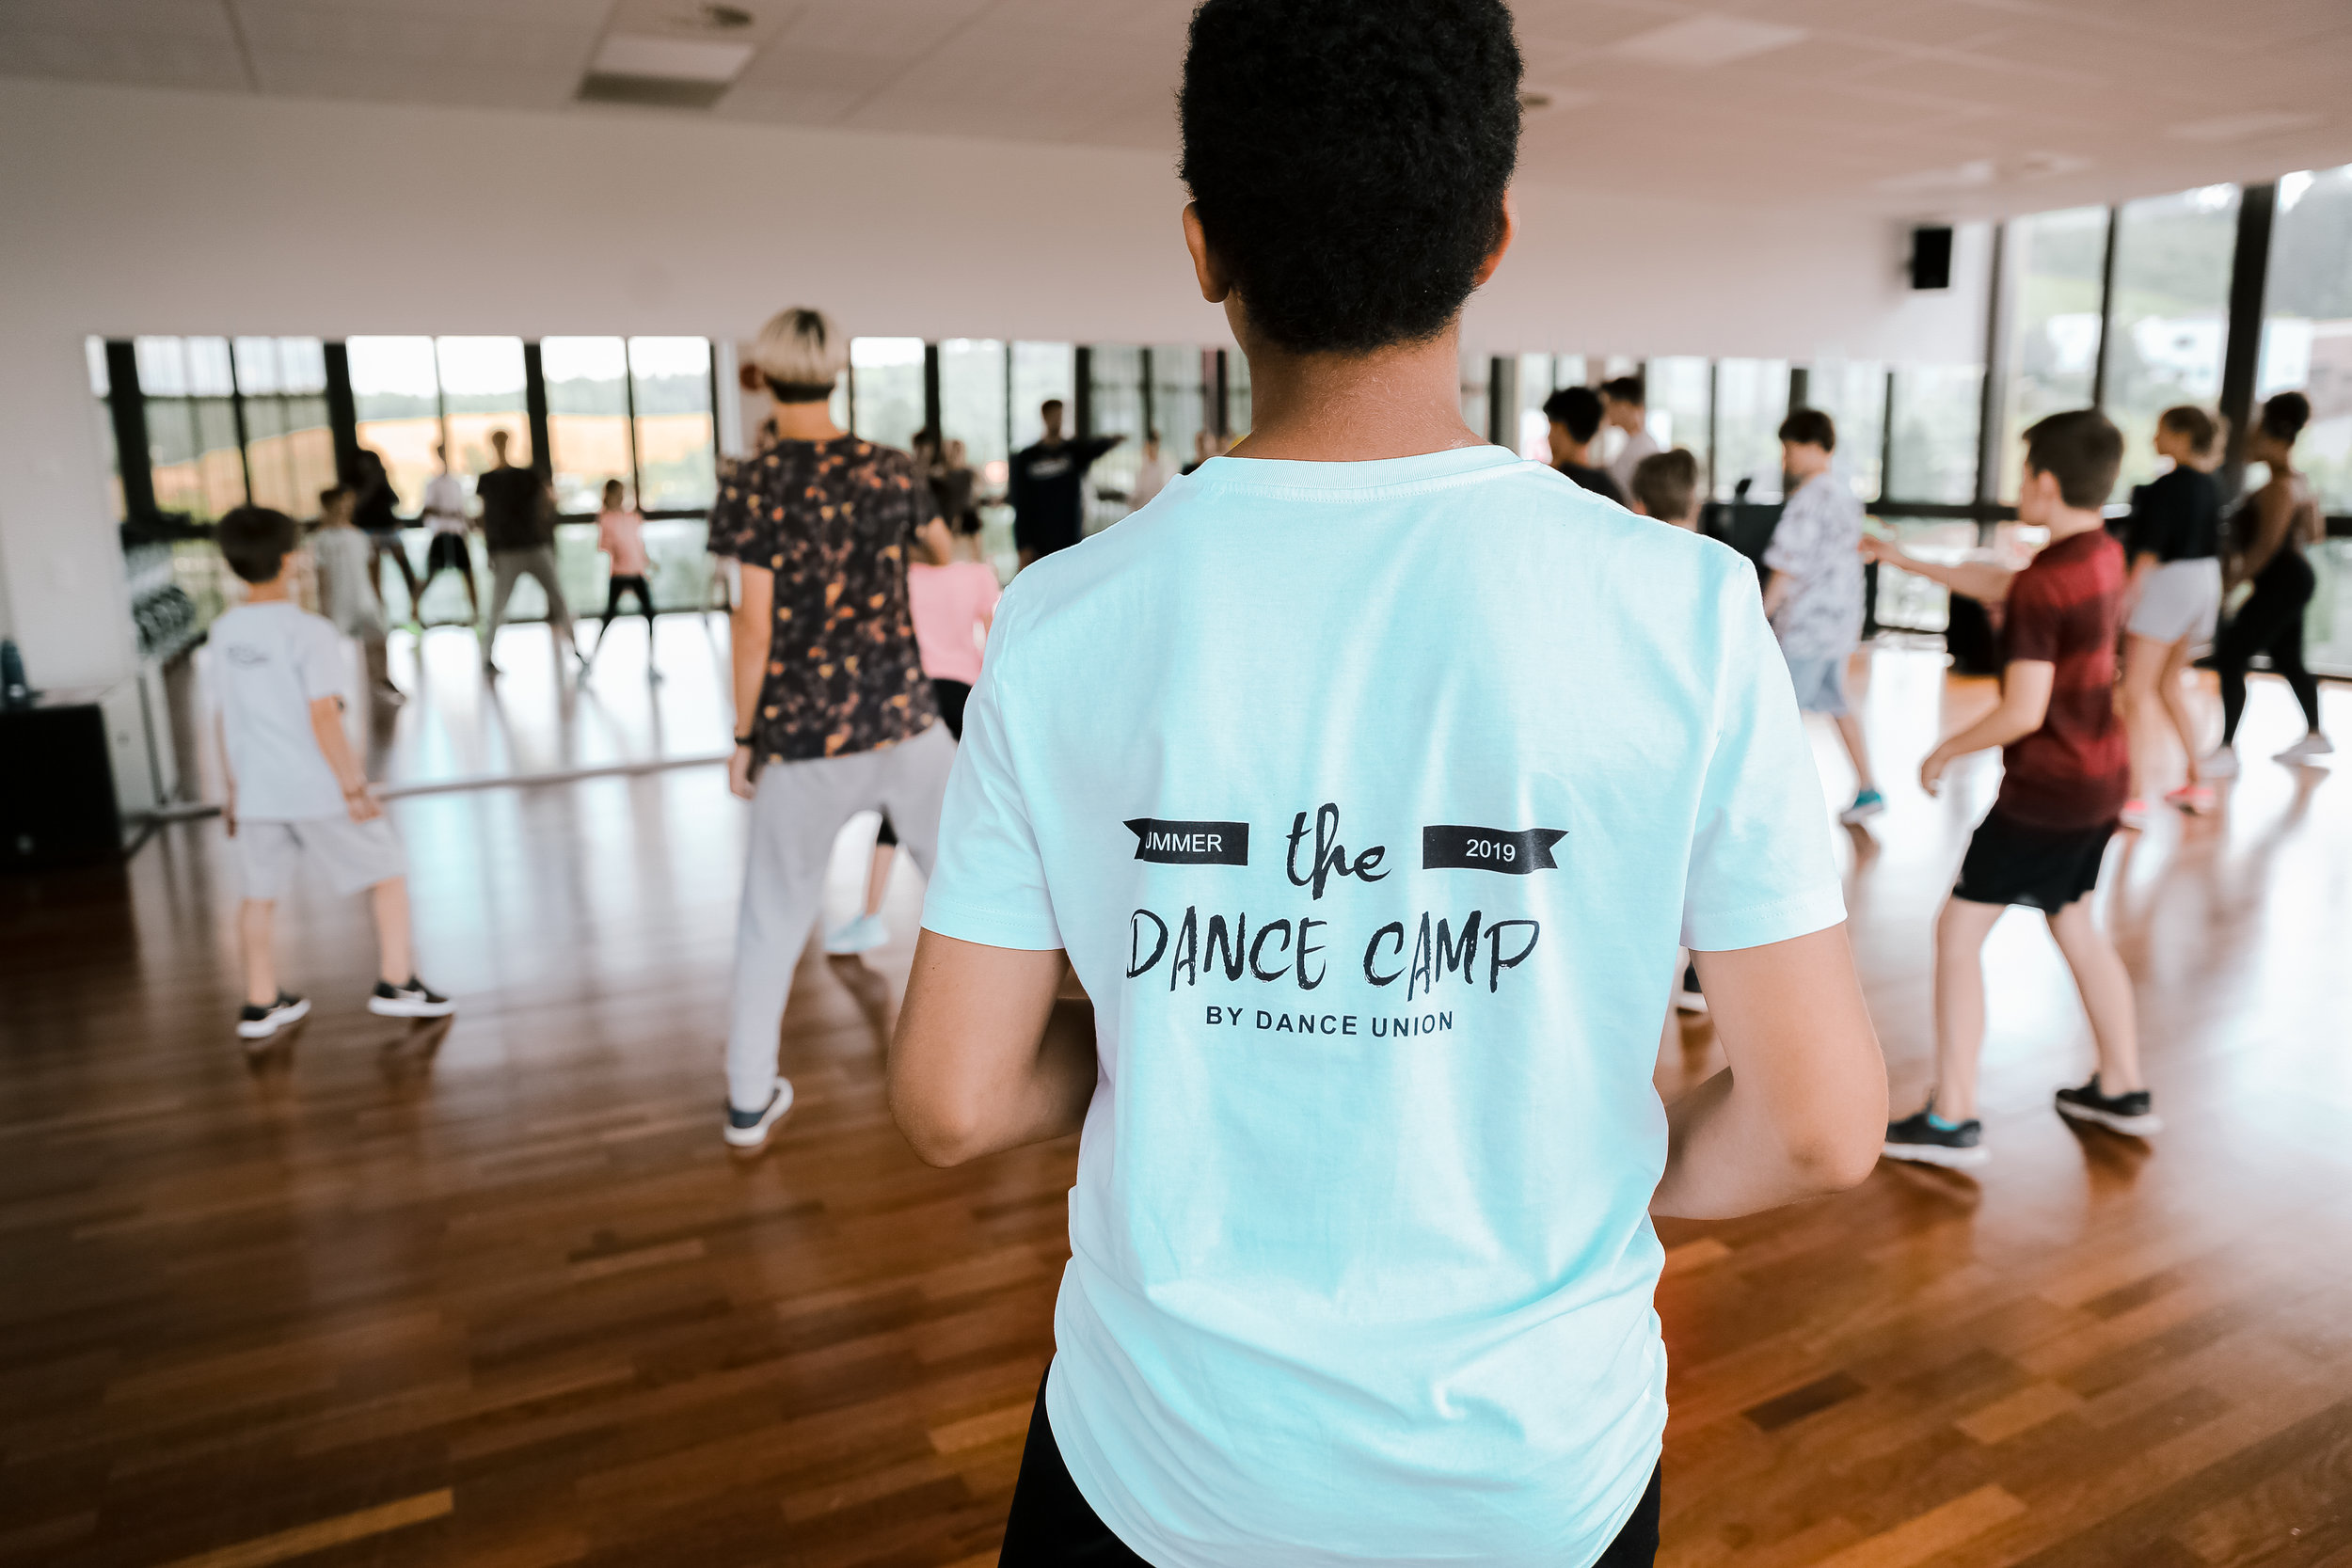 The Dancecamp by PanameAcademy